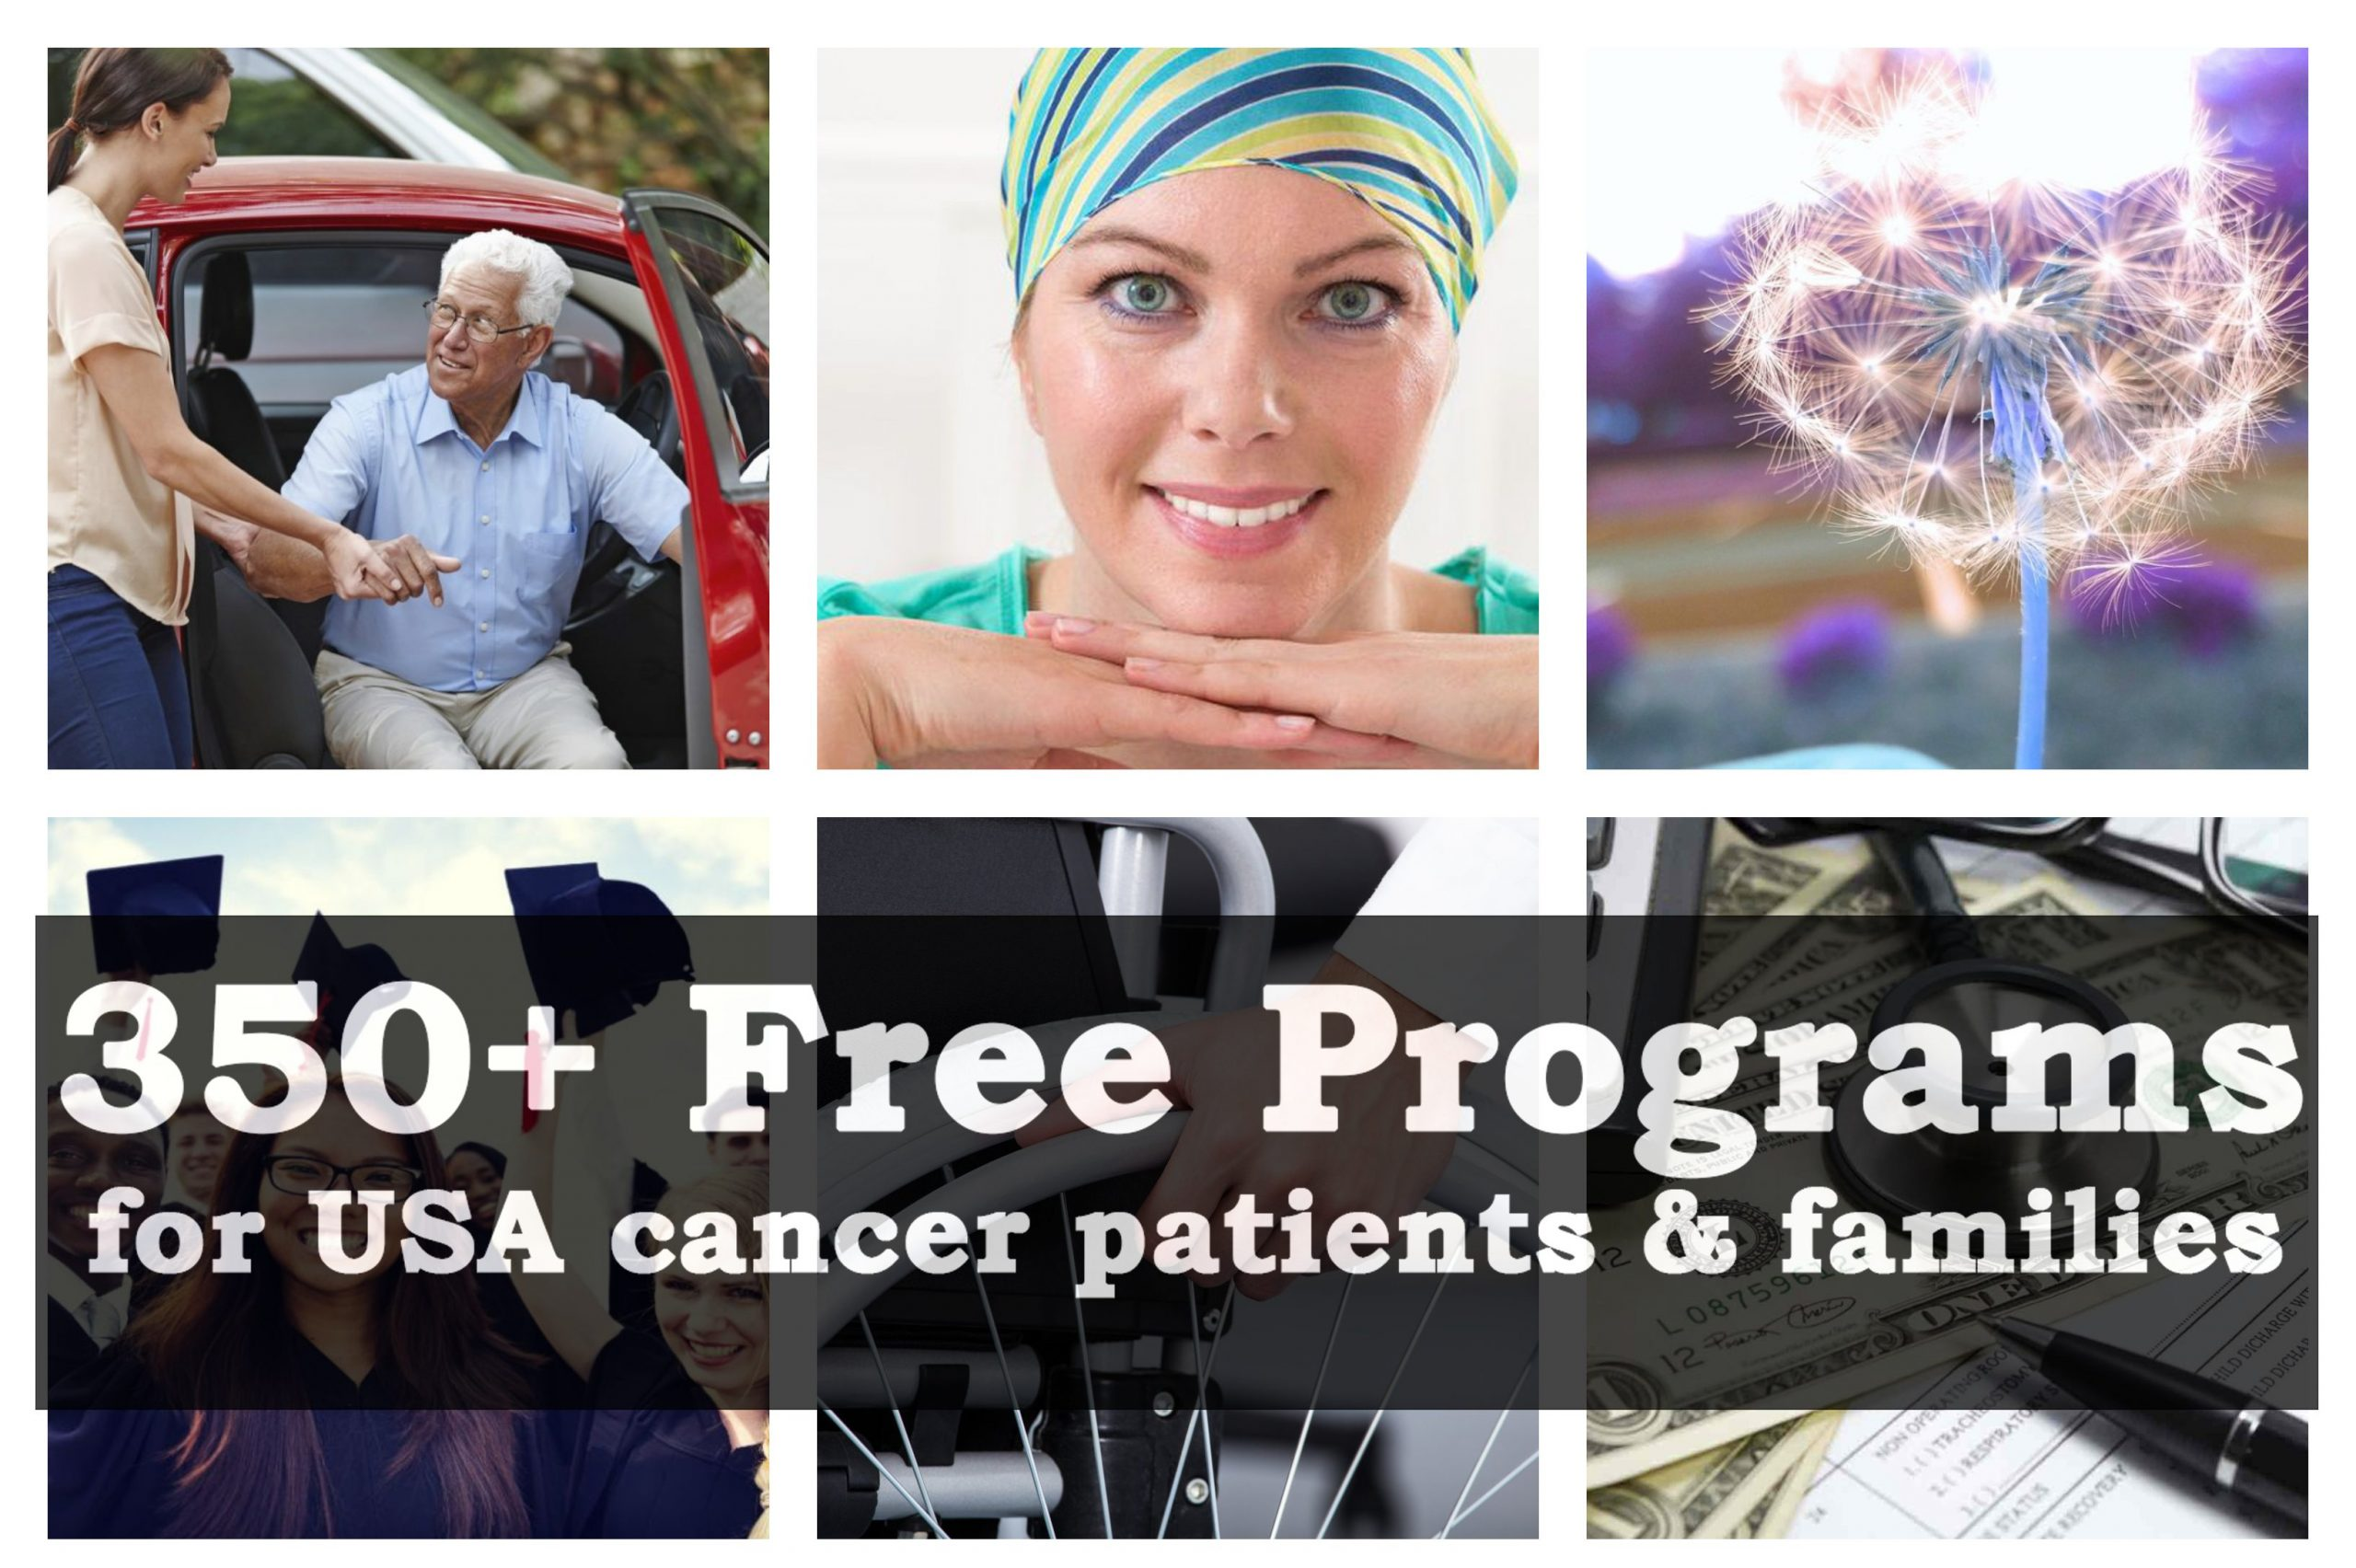 Free Programs for Cancer Patients and Families